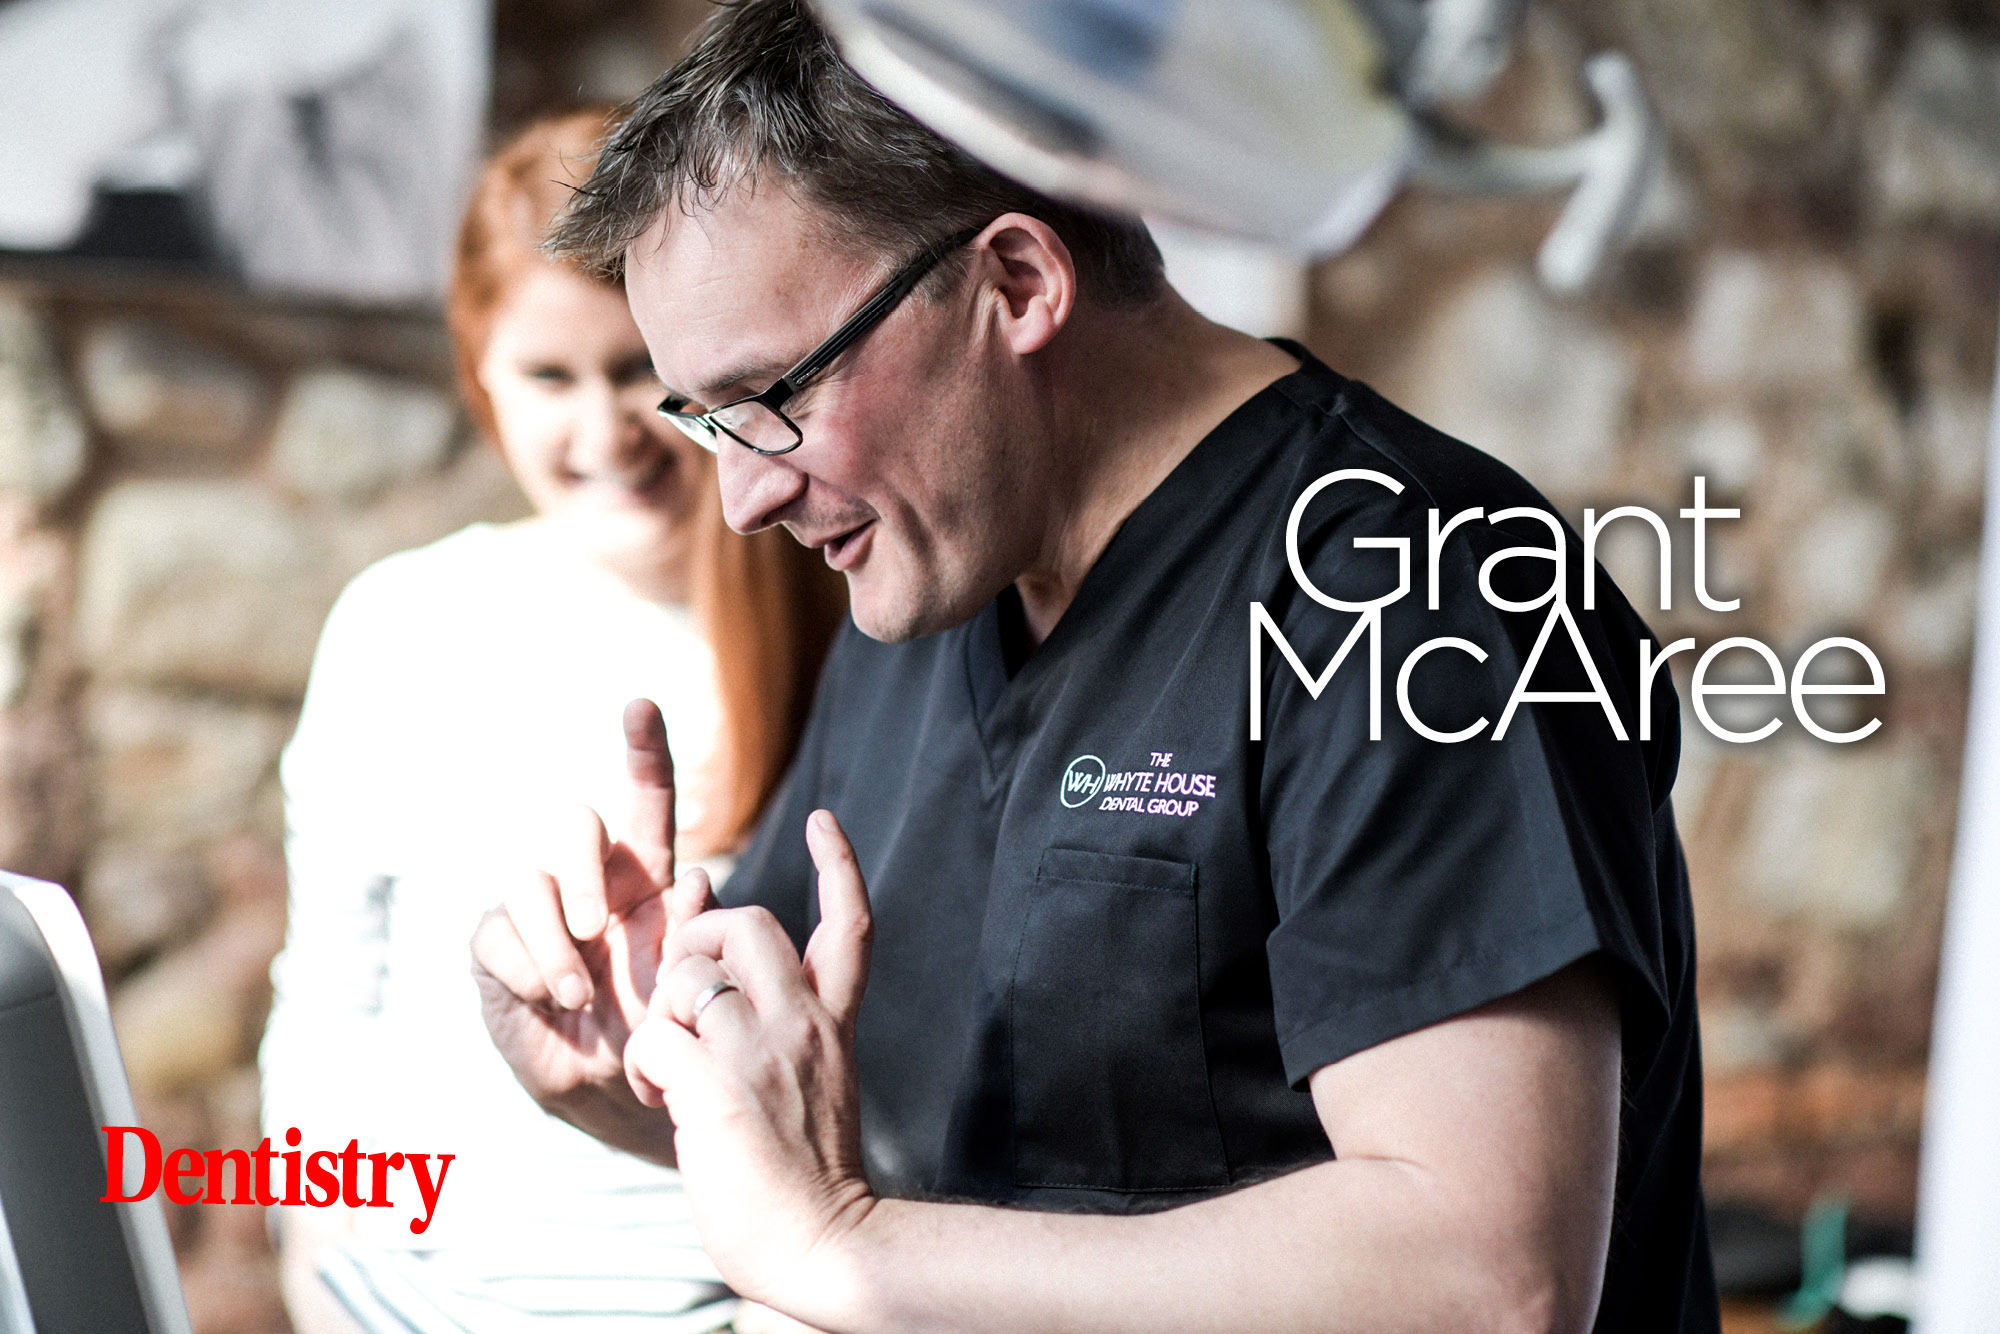 Dentistry podcast – Grant McAree on marketing your practice